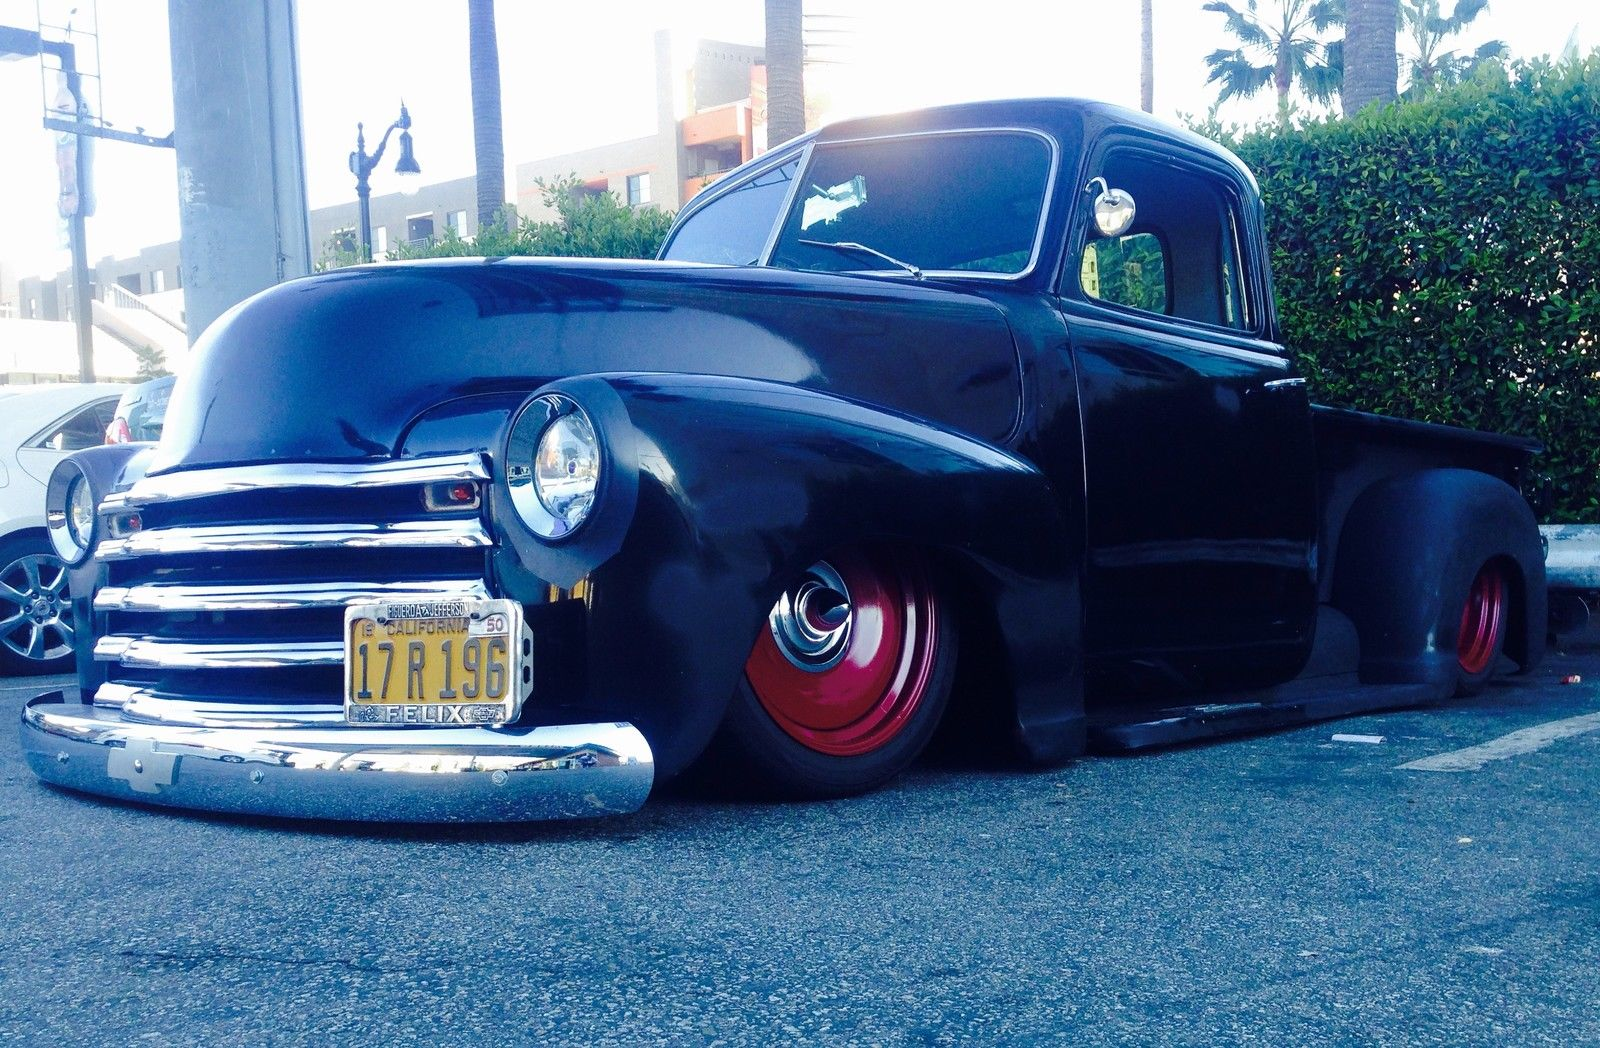 1950 Chevy Pickup Hot Rod Art Morrison Chassis 350 V8 Automatic 1949 Truck Paint Colors Chevrolet Other Pickups